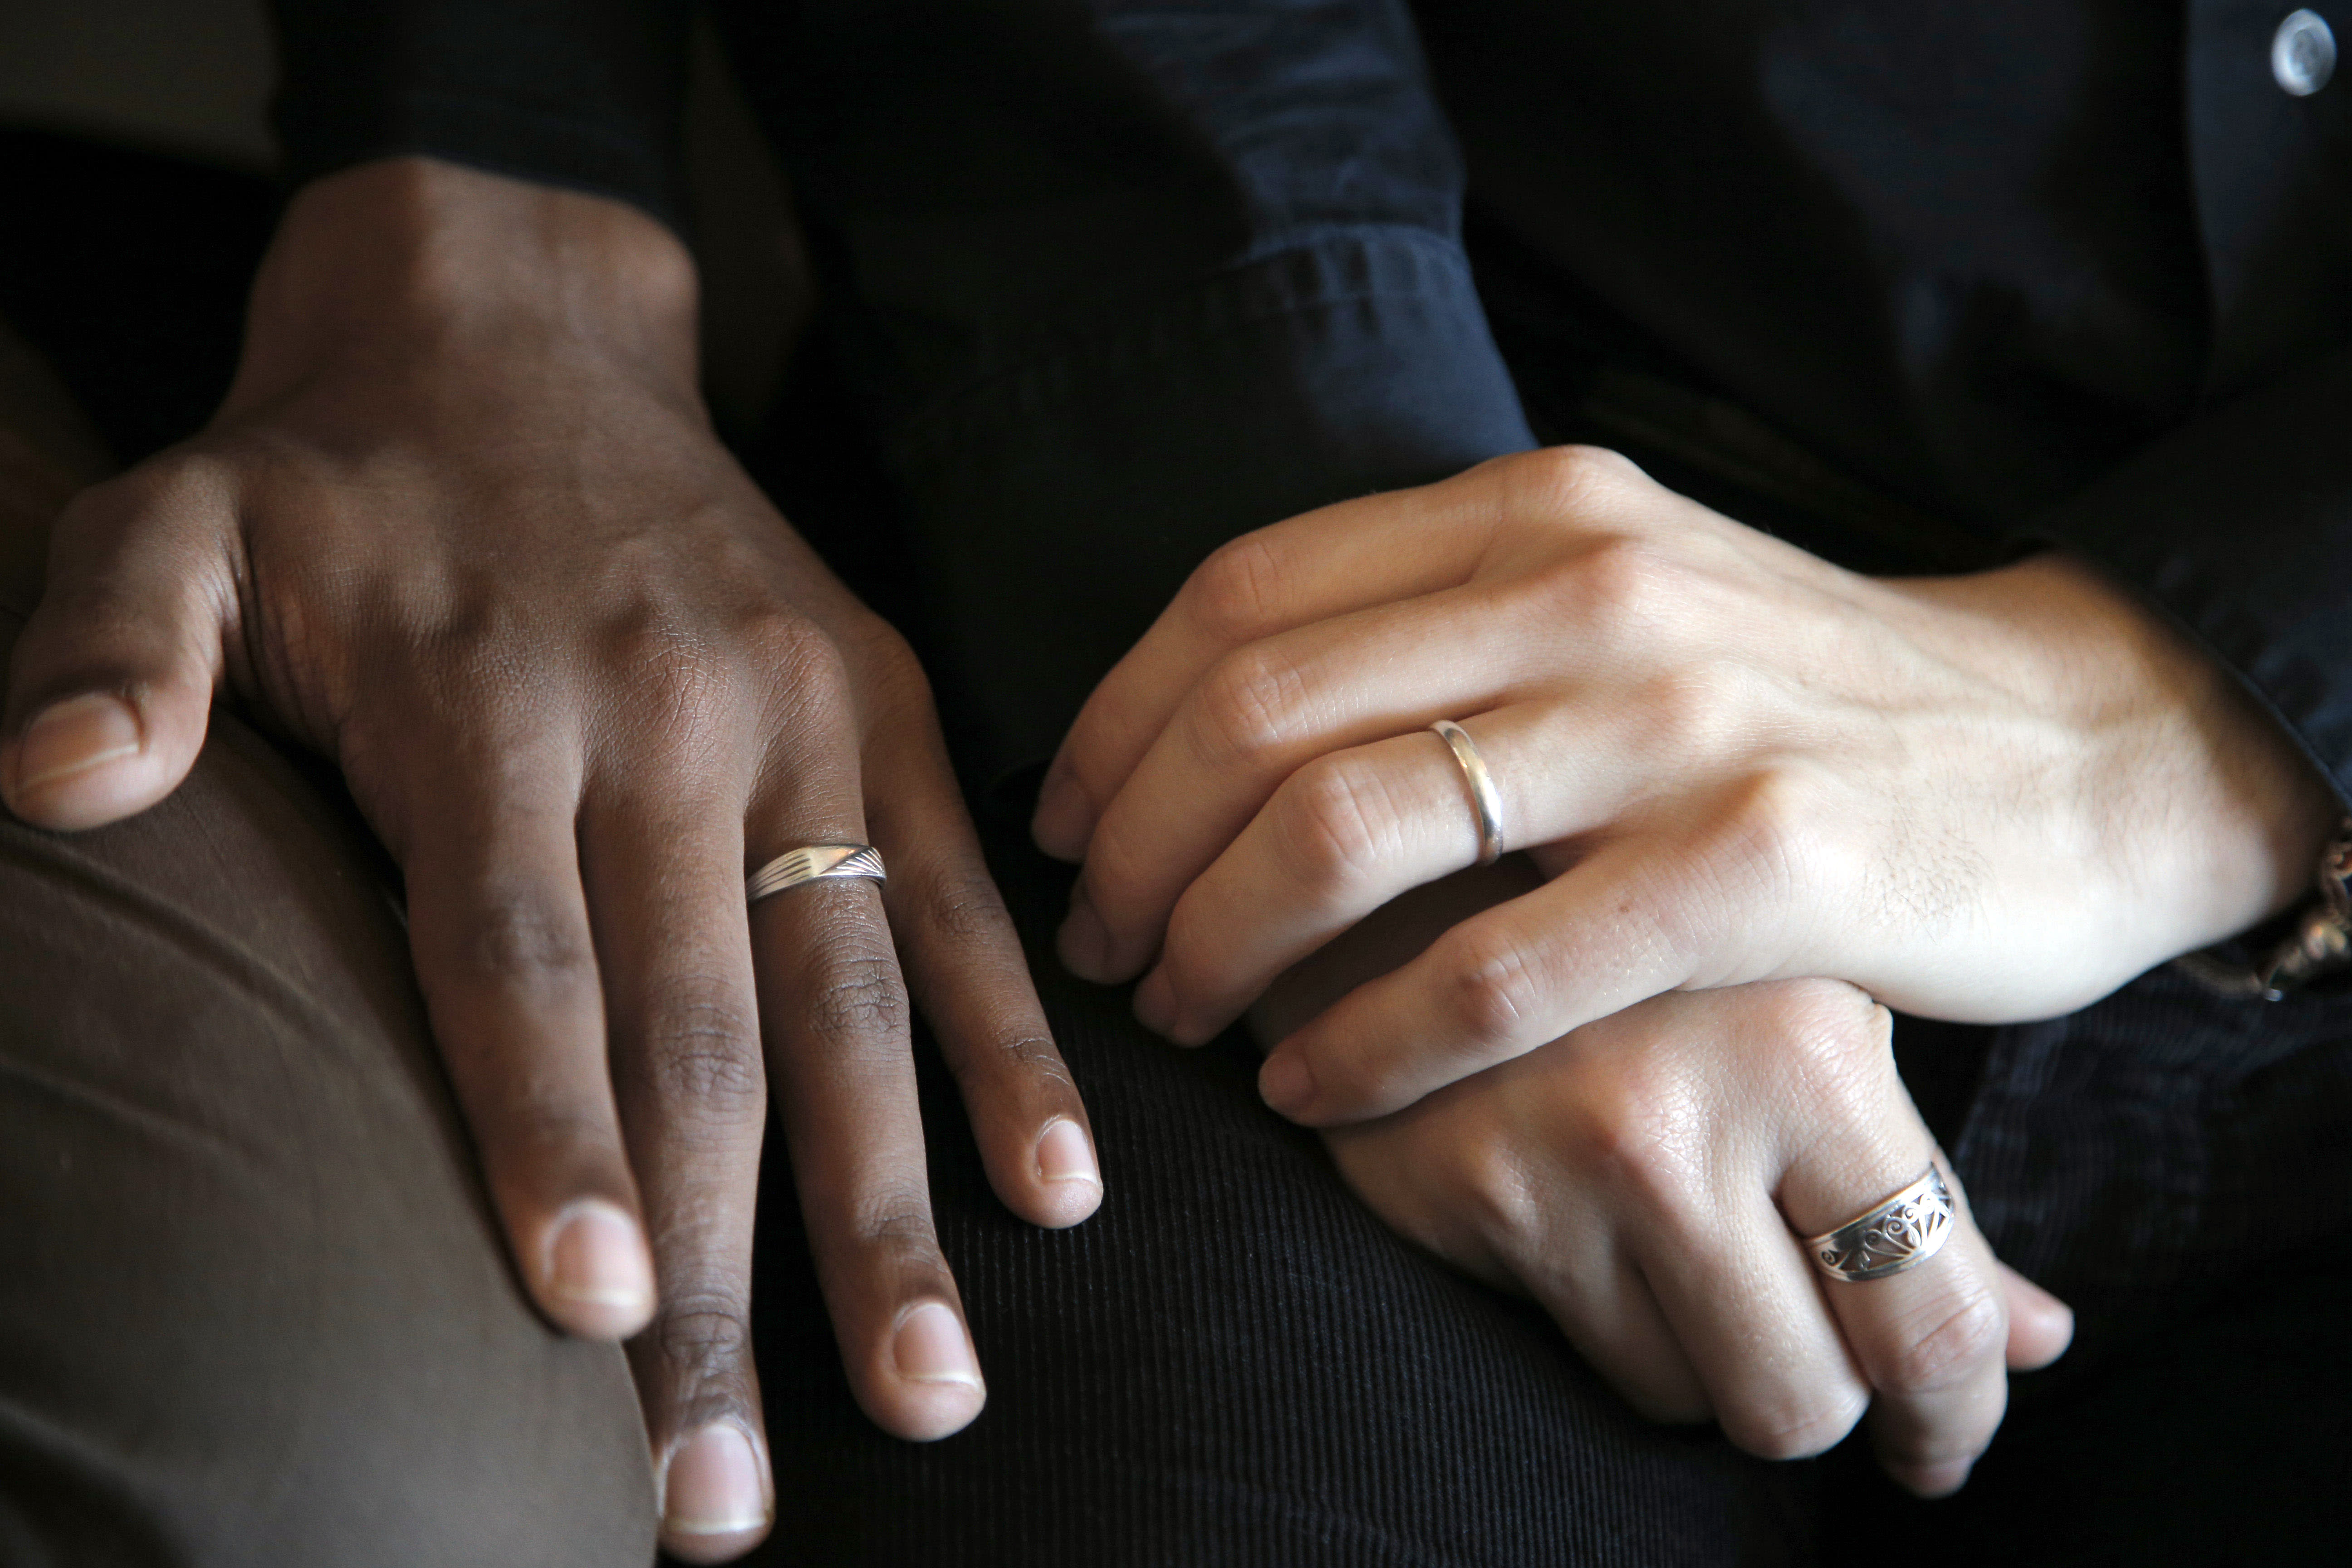 """In this photo taken on Monday, Oct. 22, 2012, the hands of Ludovic-Mohamed Zahed, right, who married his live-in partner Qiyaammudeen Jantjies, left, in South Africa, where gay marriage is recognized, during an interview with the Associated Press in Sevran, outside Paris. A plan to legalize same-sex marriage and allow gay couples to adopt was a liberal cornerstone of French President Francois Hollande's election manifesto earlier this year. It looked like a shoo-in, supported by a majority of the French, and an easy way to break with his conservative predecessor. But that was then, Now, as the Socialist government prepares to unveil its draft """"marriage for everyone"""" law Wednesday, polls show wavering support for the idea and for the president amid increasingly vocal opposition in this traditionally Catholic country. Ludovic-Mohamed Zahed, who married his live-in partner Qiyaammudeen Jantjies in South Africa, where gay marriage is recognized, is already seeking instruction from his local town council to get his marriage recognized in France as soon as he can. (AP Photo/Christophe Ena)"""